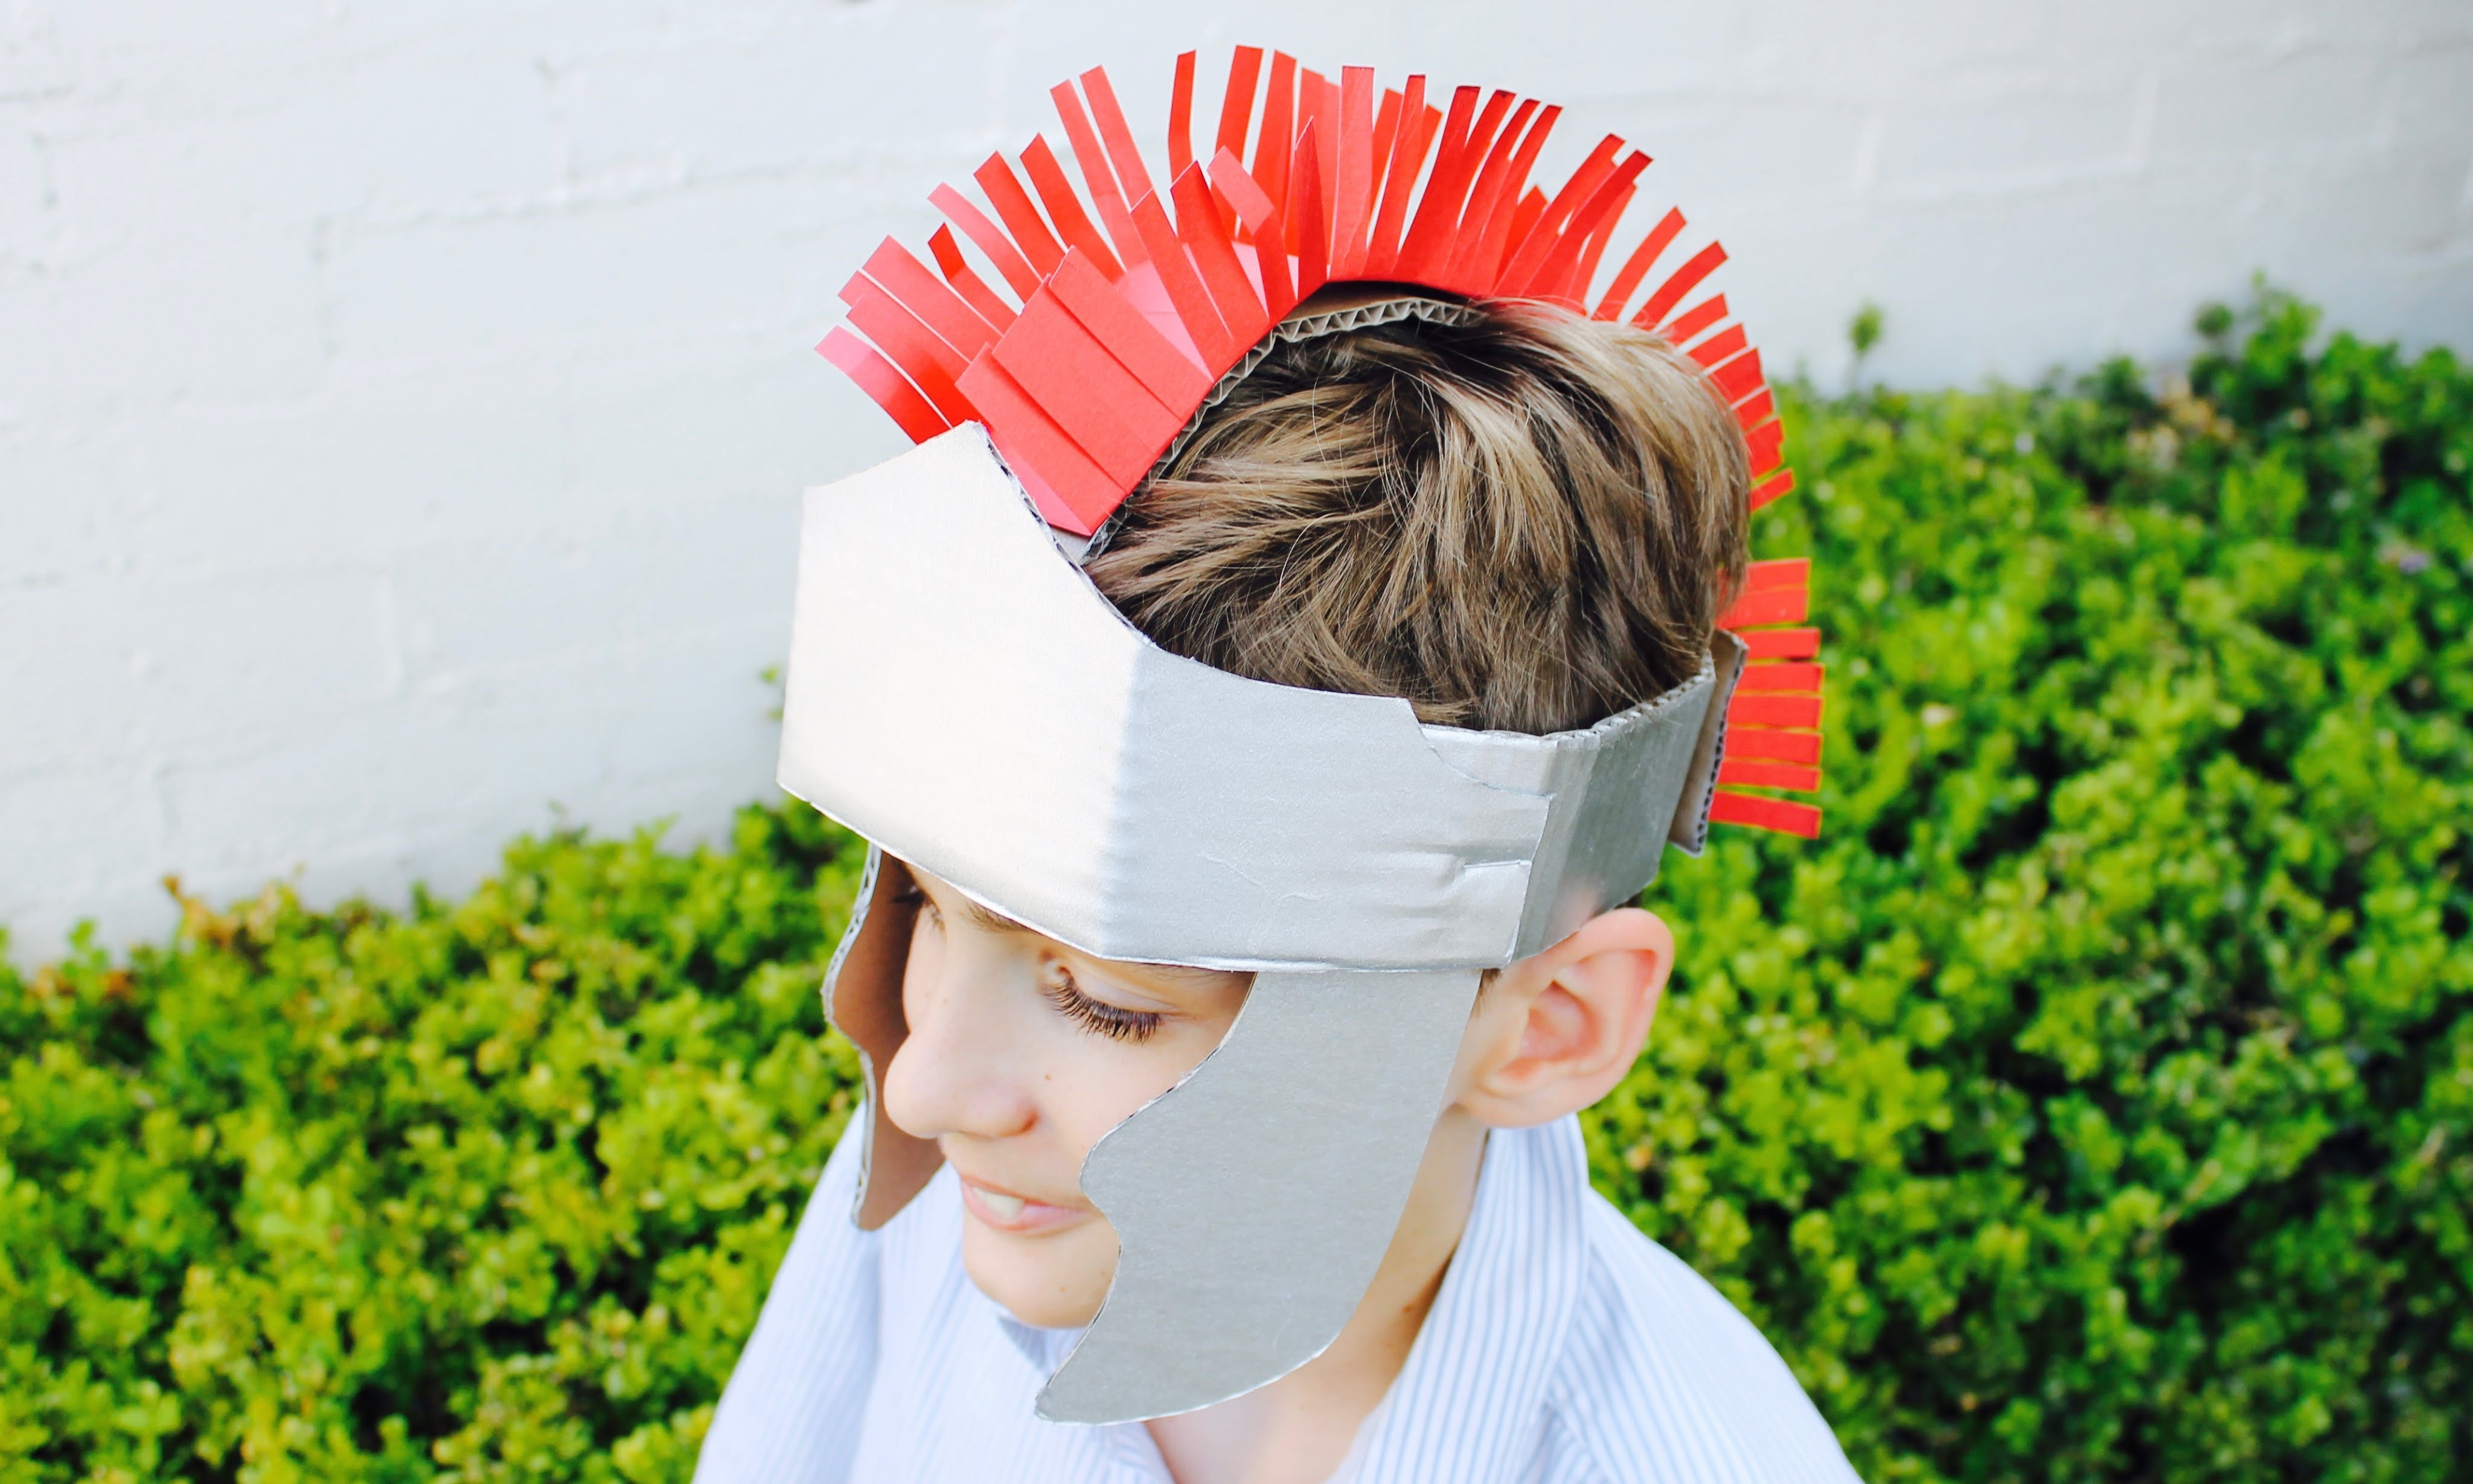 Easy craft: How to make a gladiator helmet